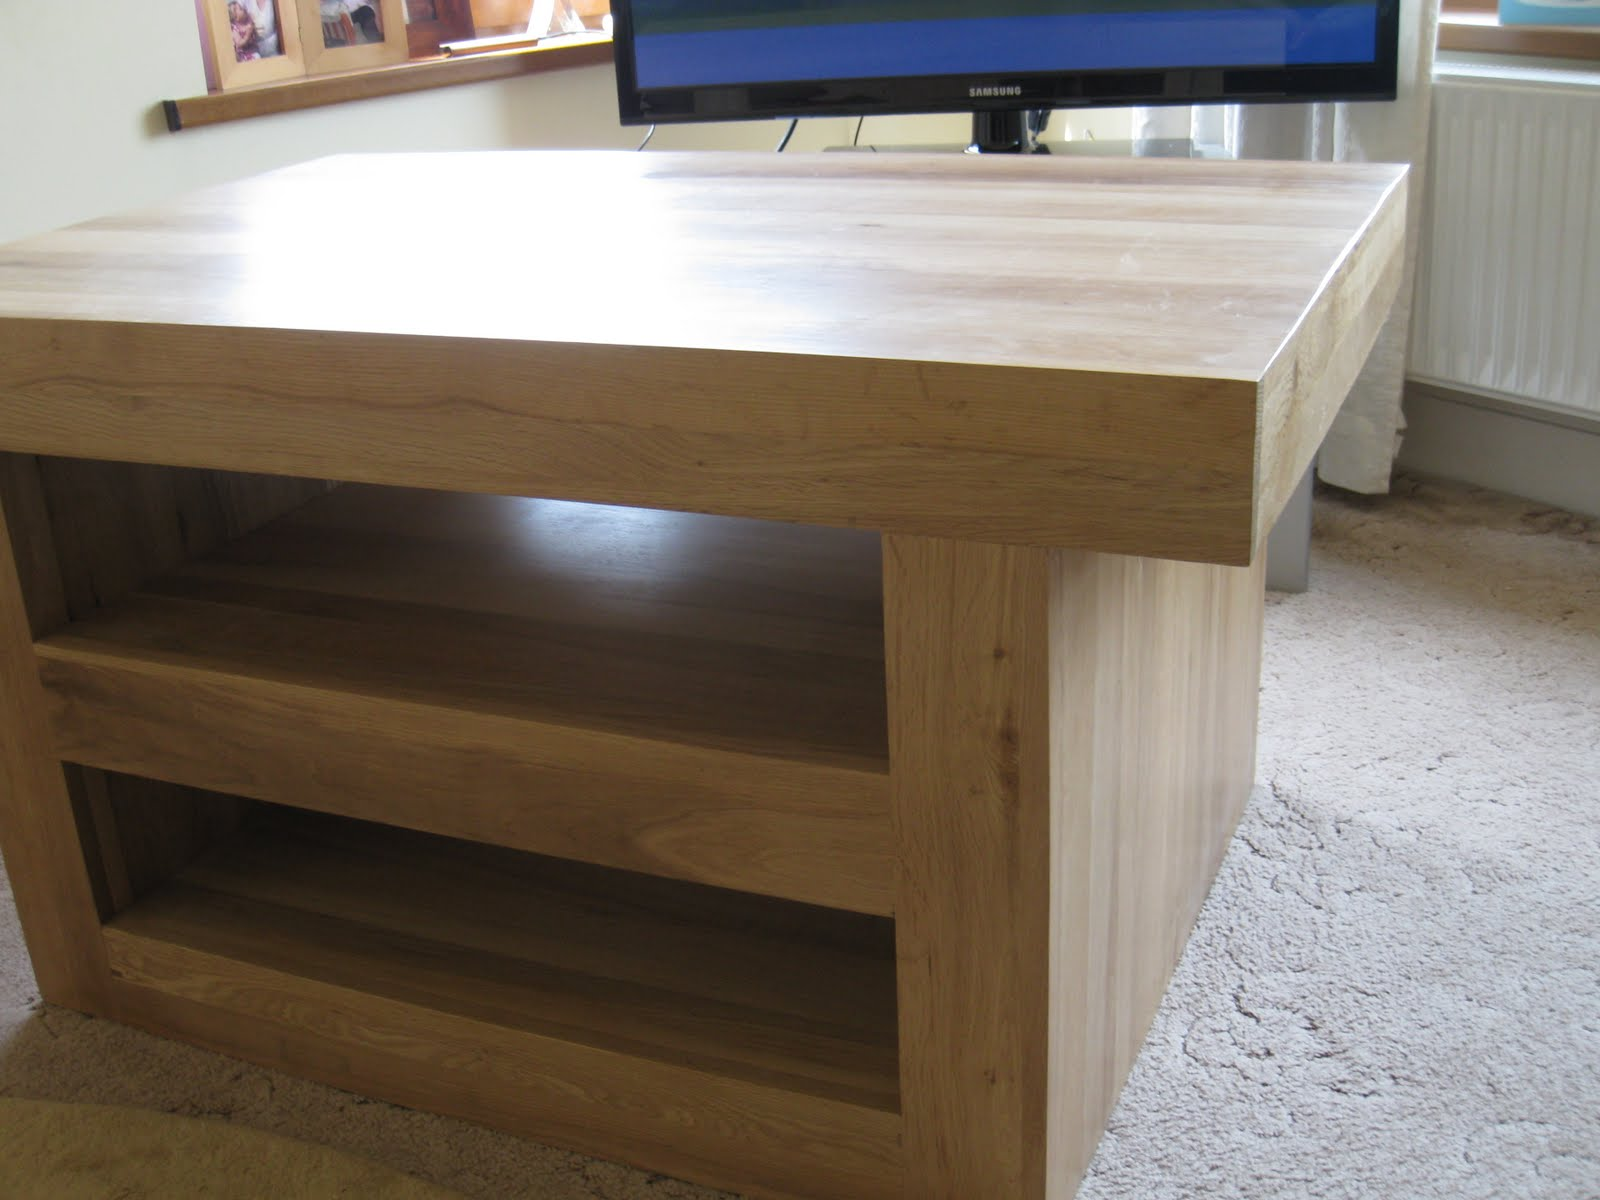 Oak Furniture Land Bedroom Furniture Oak Furniture Land Initial Disappointment Finally Resolved